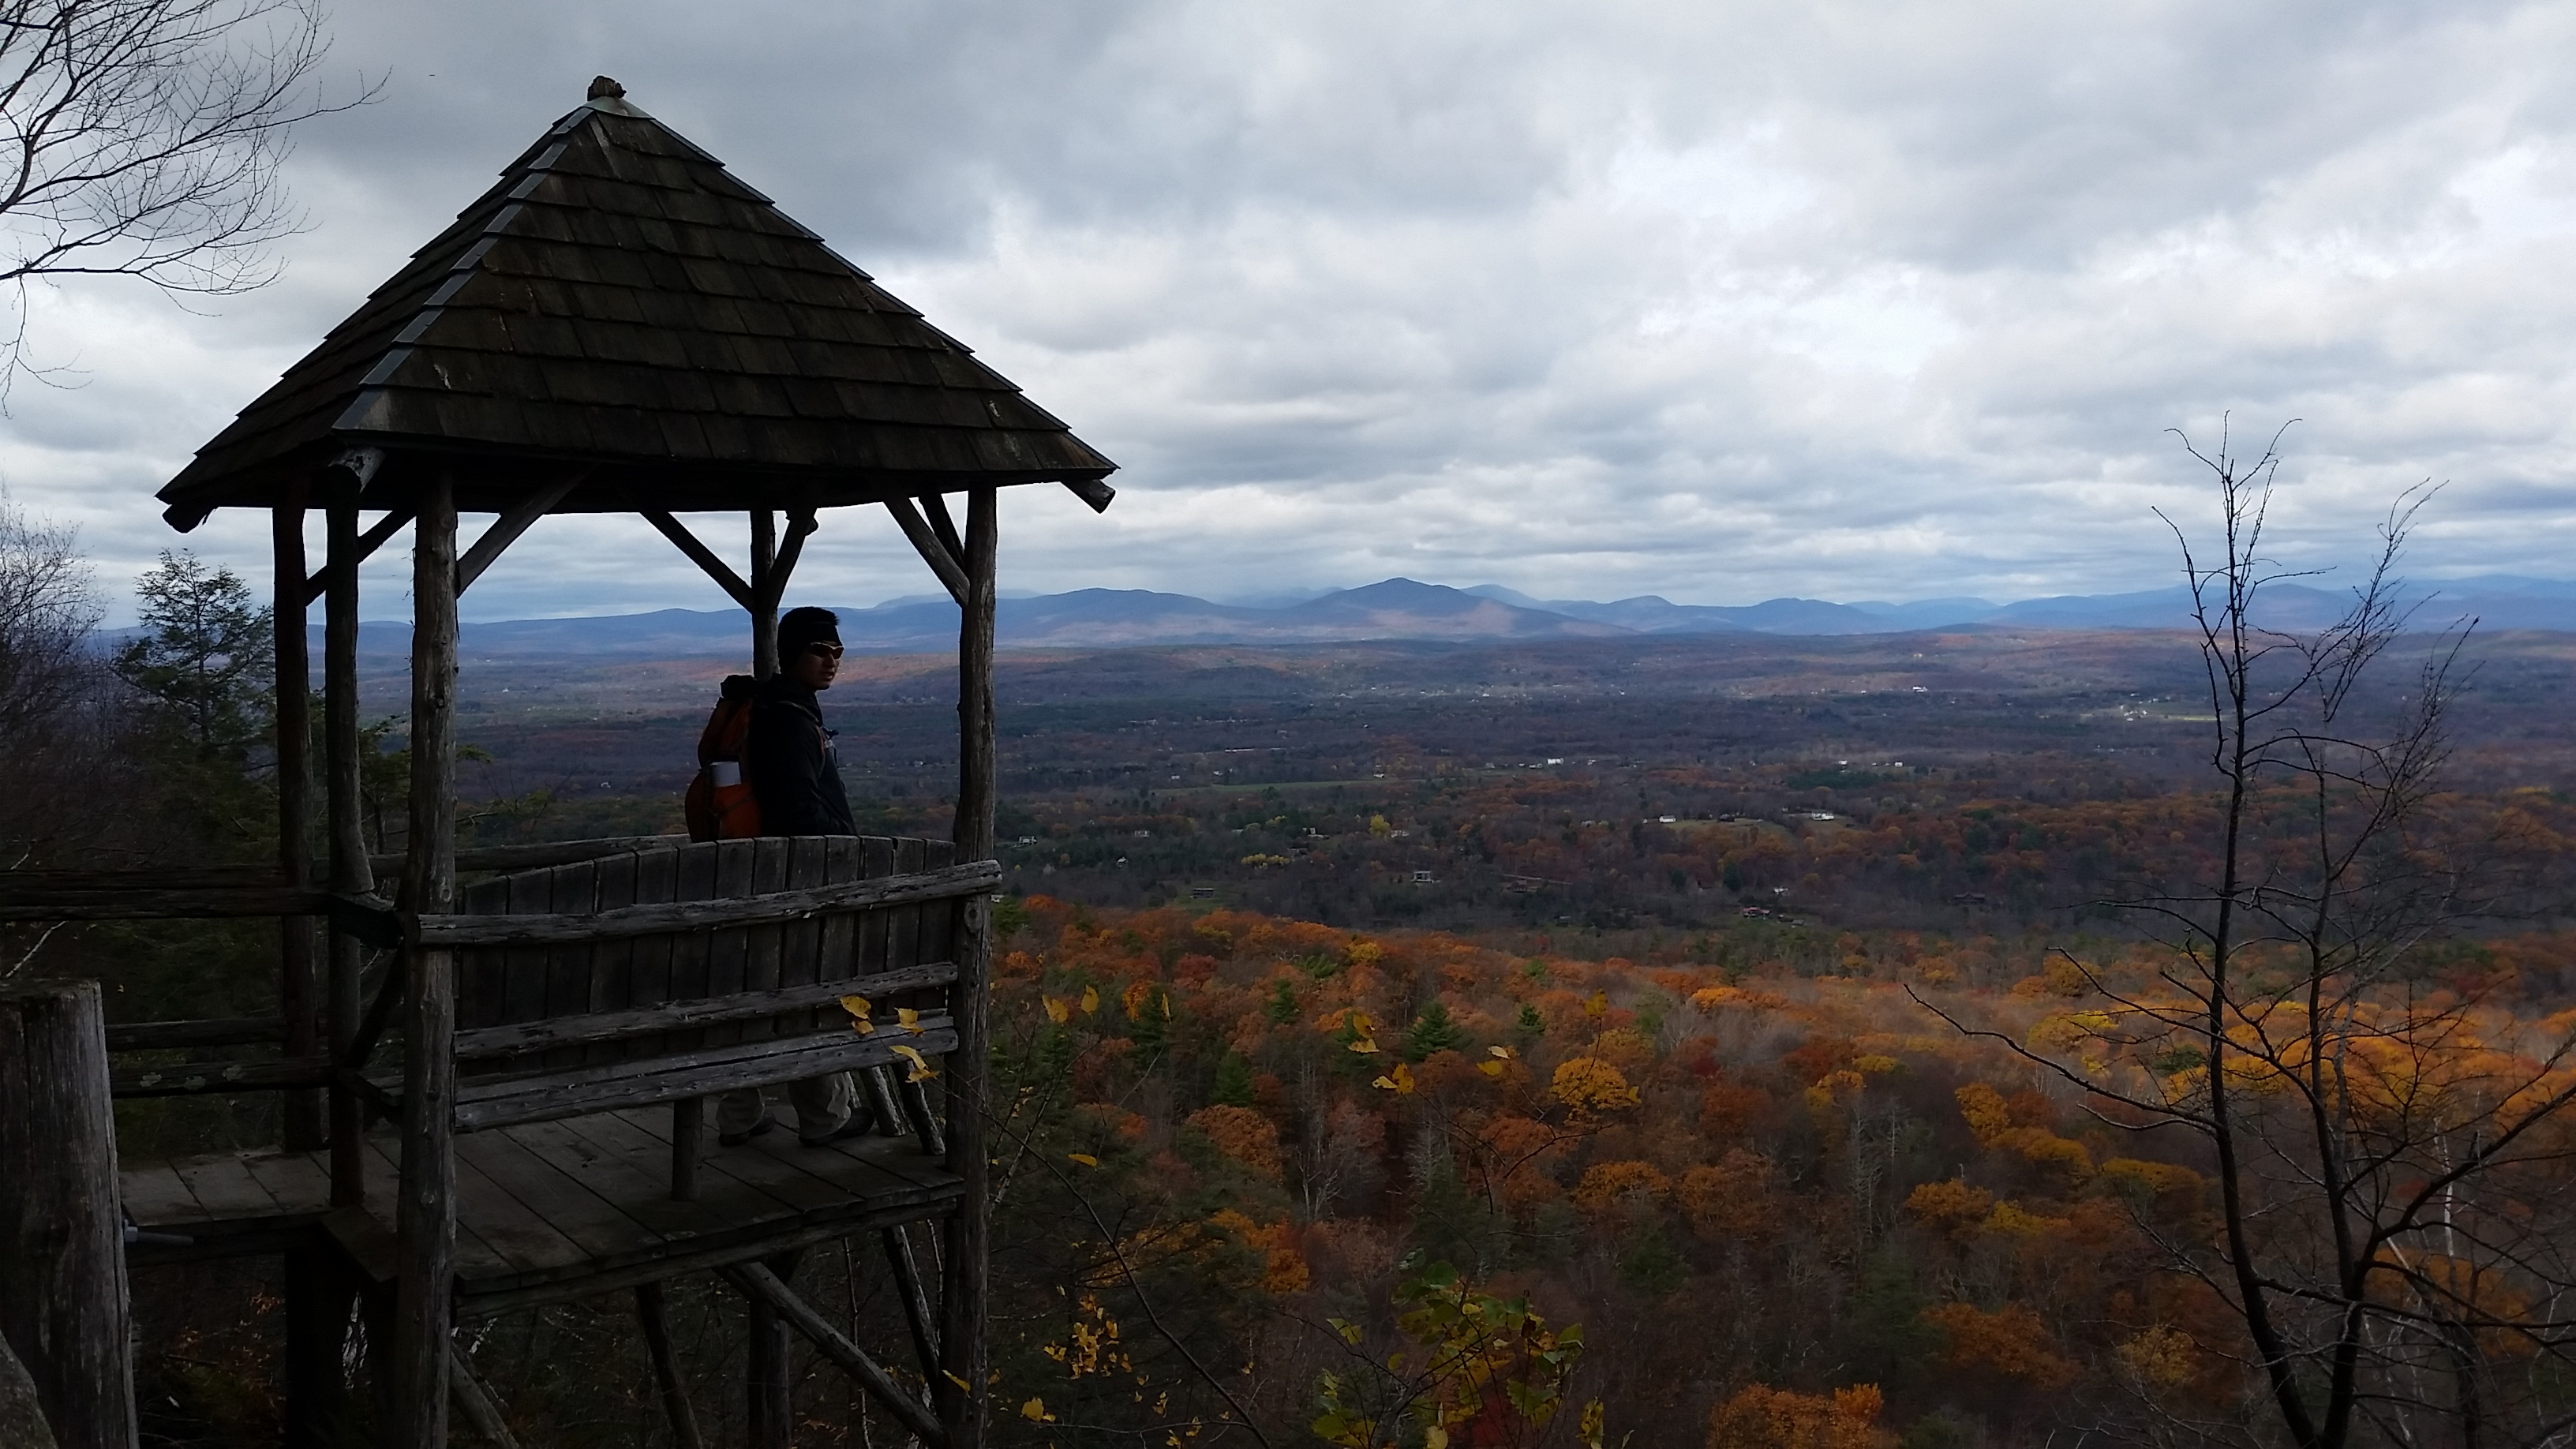 Hiking Mohonk Preserve - 5 Best Hikes in Hudson Valley